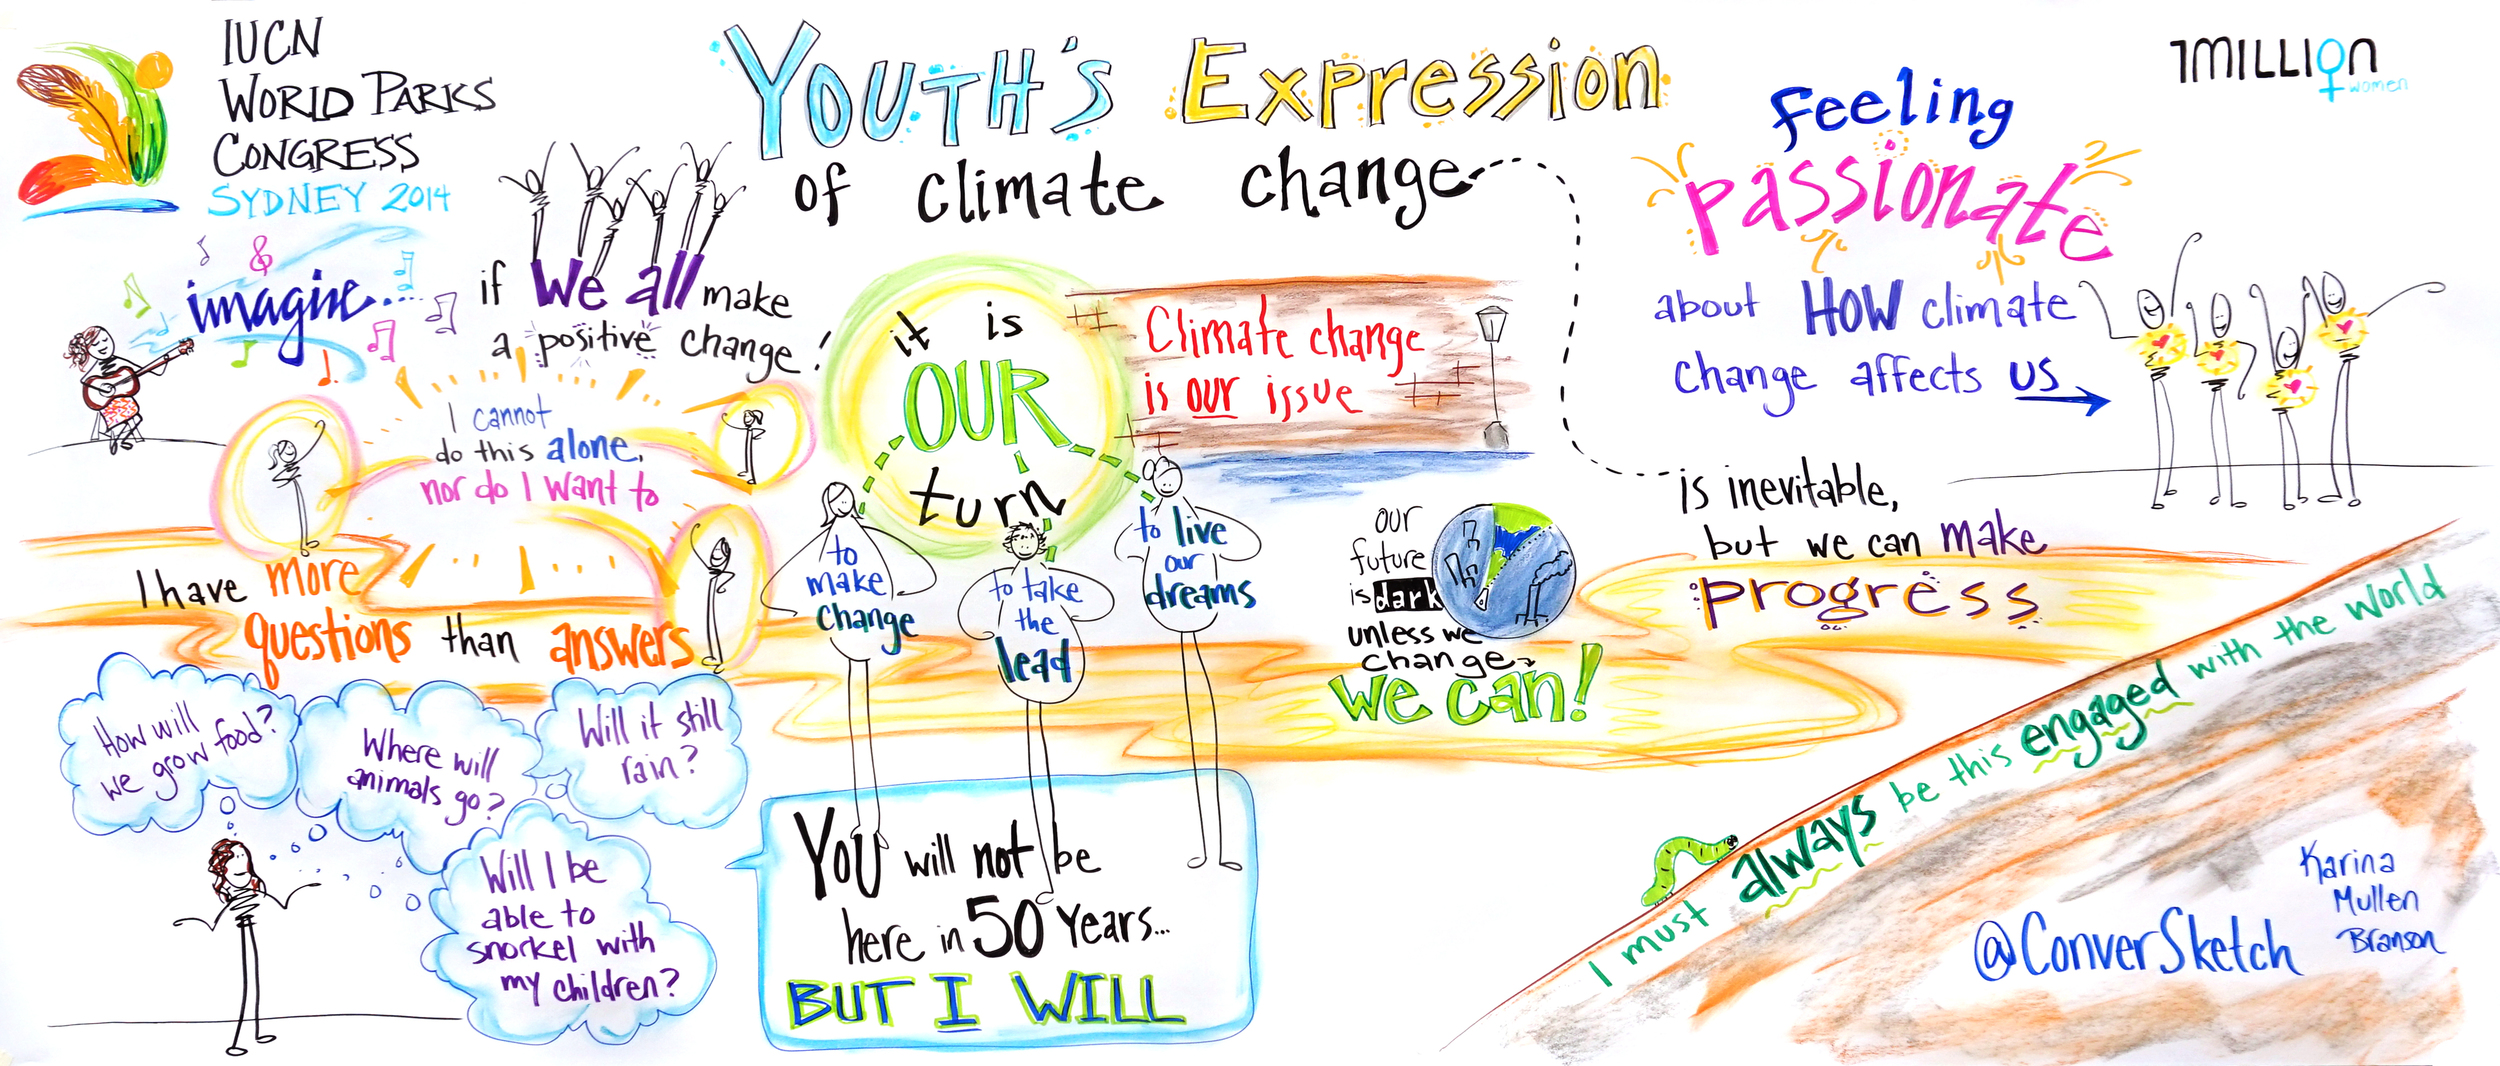 Young women from Australia shared what climate change means to them. | 2014